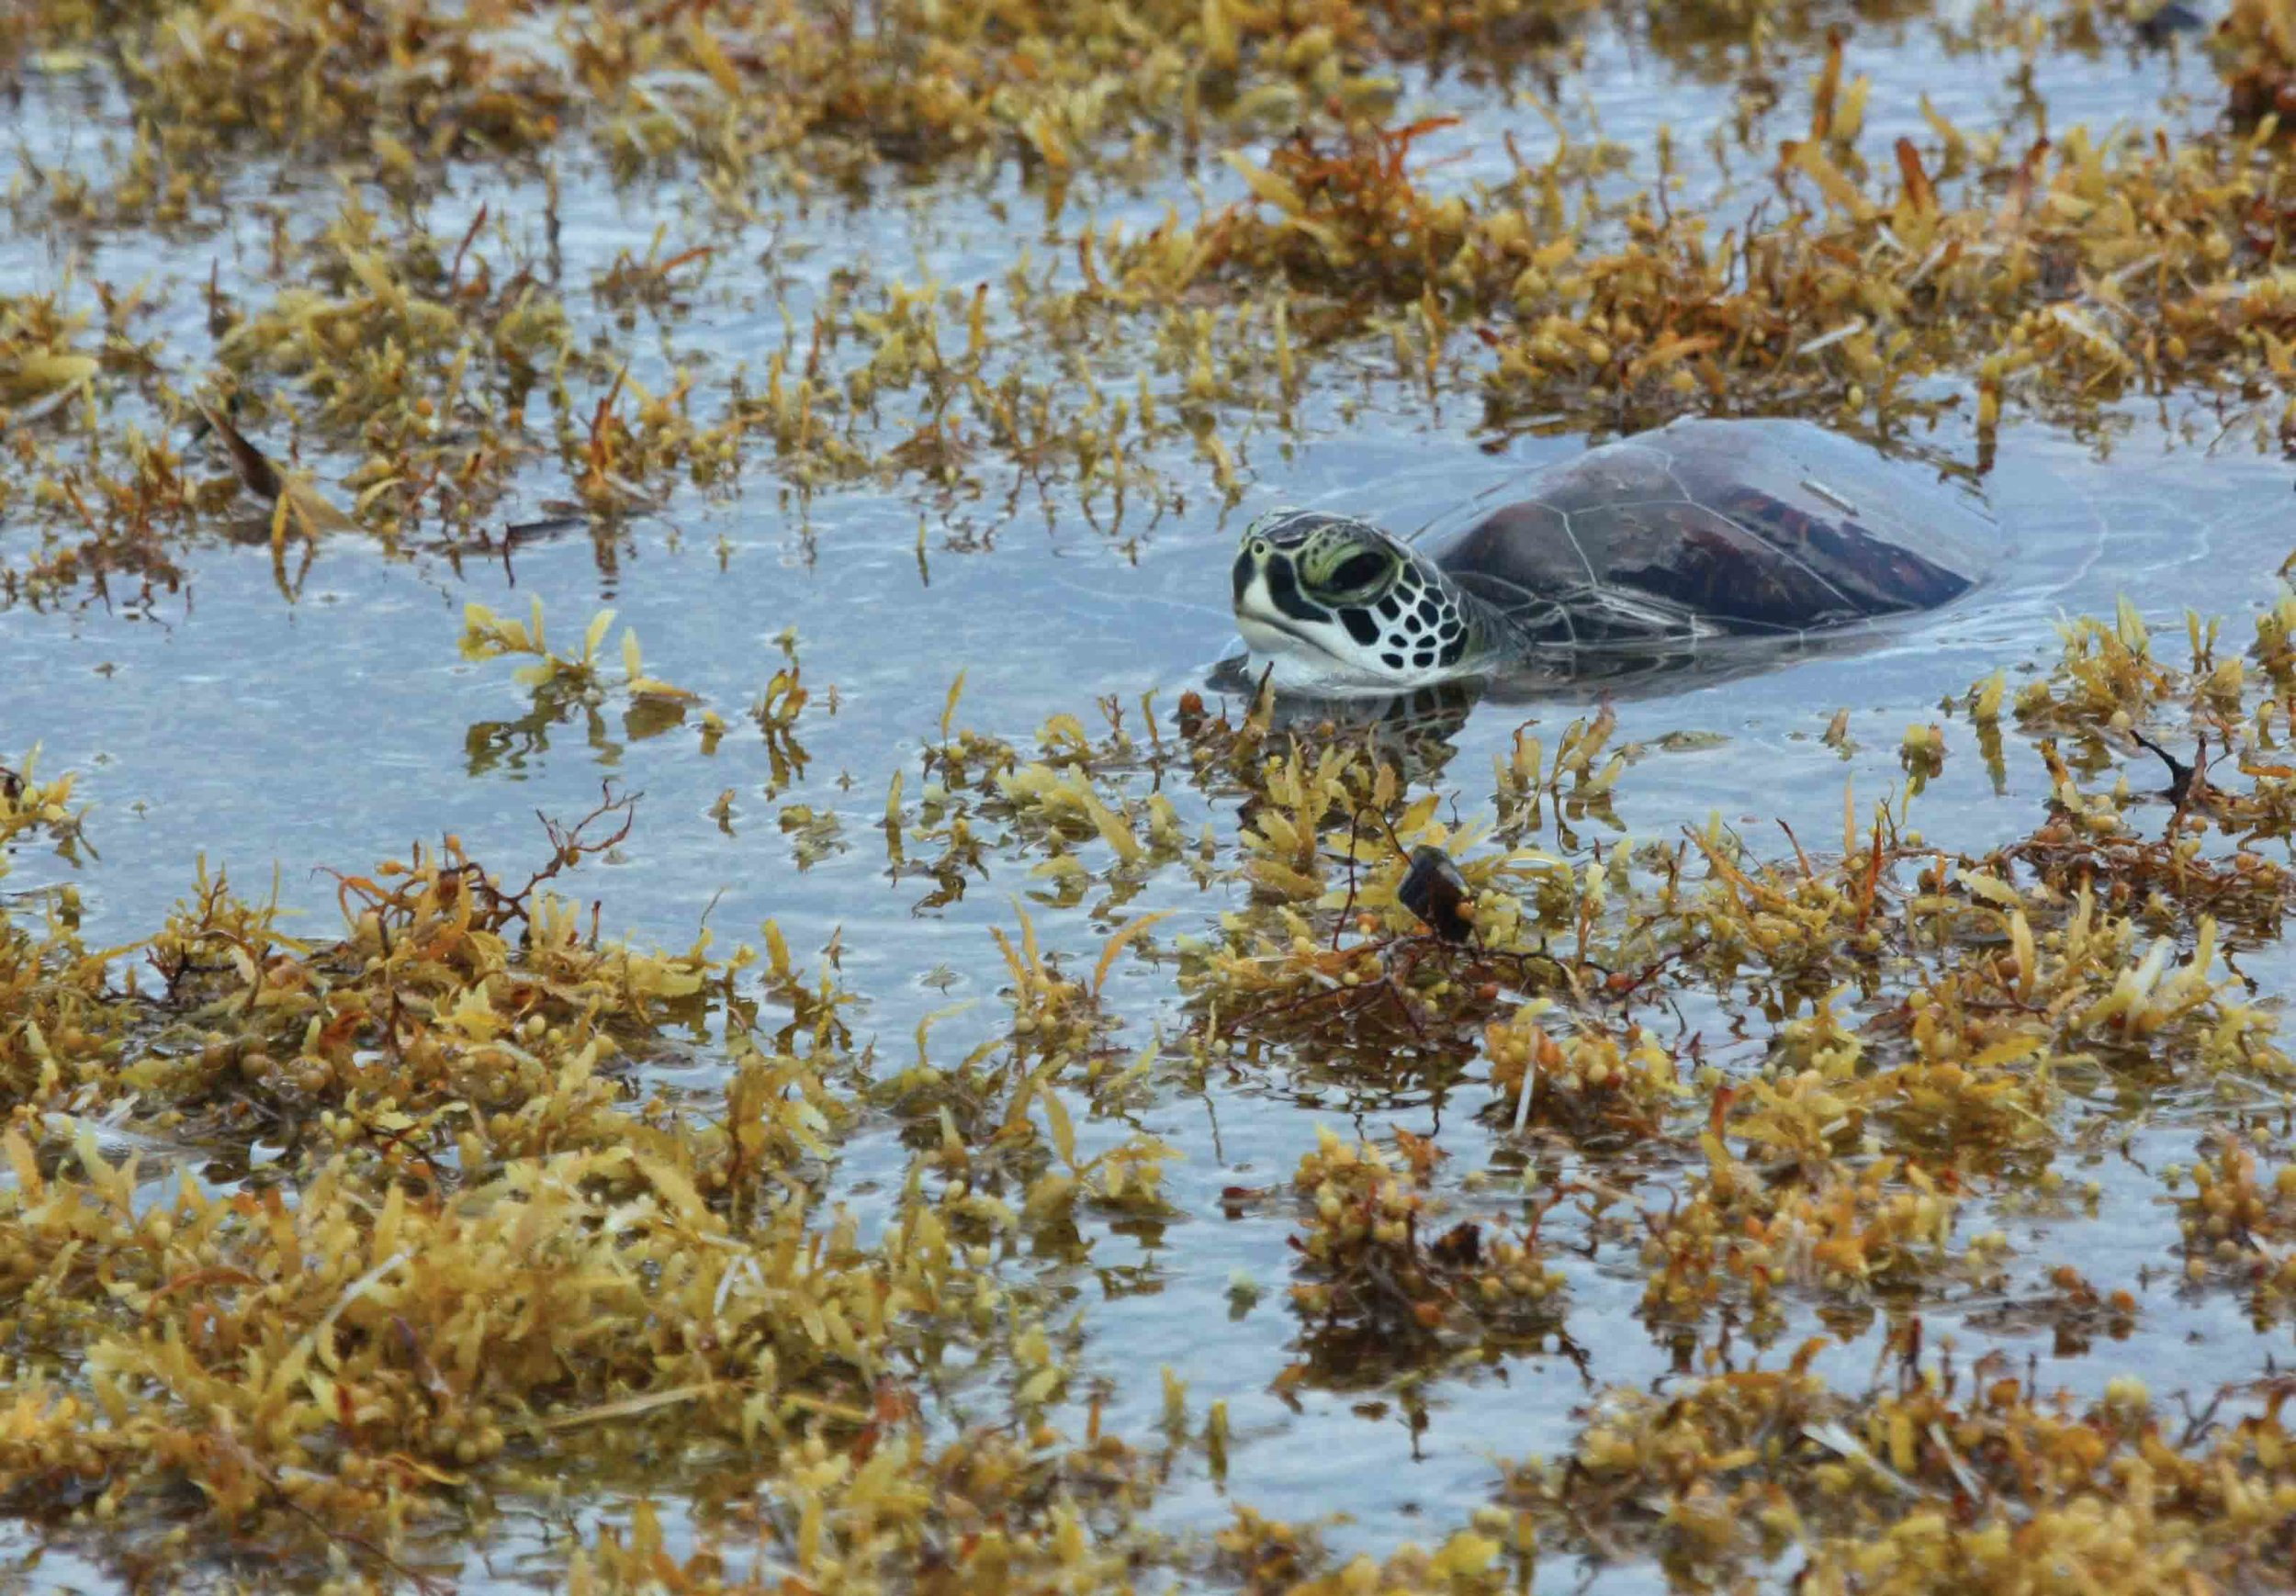 A juvenile green turtle drifts within pelagic Sargassum in the open waters of the Gulf of Mexico off the coast of Florida, U.S.A. Green turtles, loggerheads, hawksbills, and Kemp's ridleys all associate with open-ocean Sargassum during their early life stages. © Blair Witherington